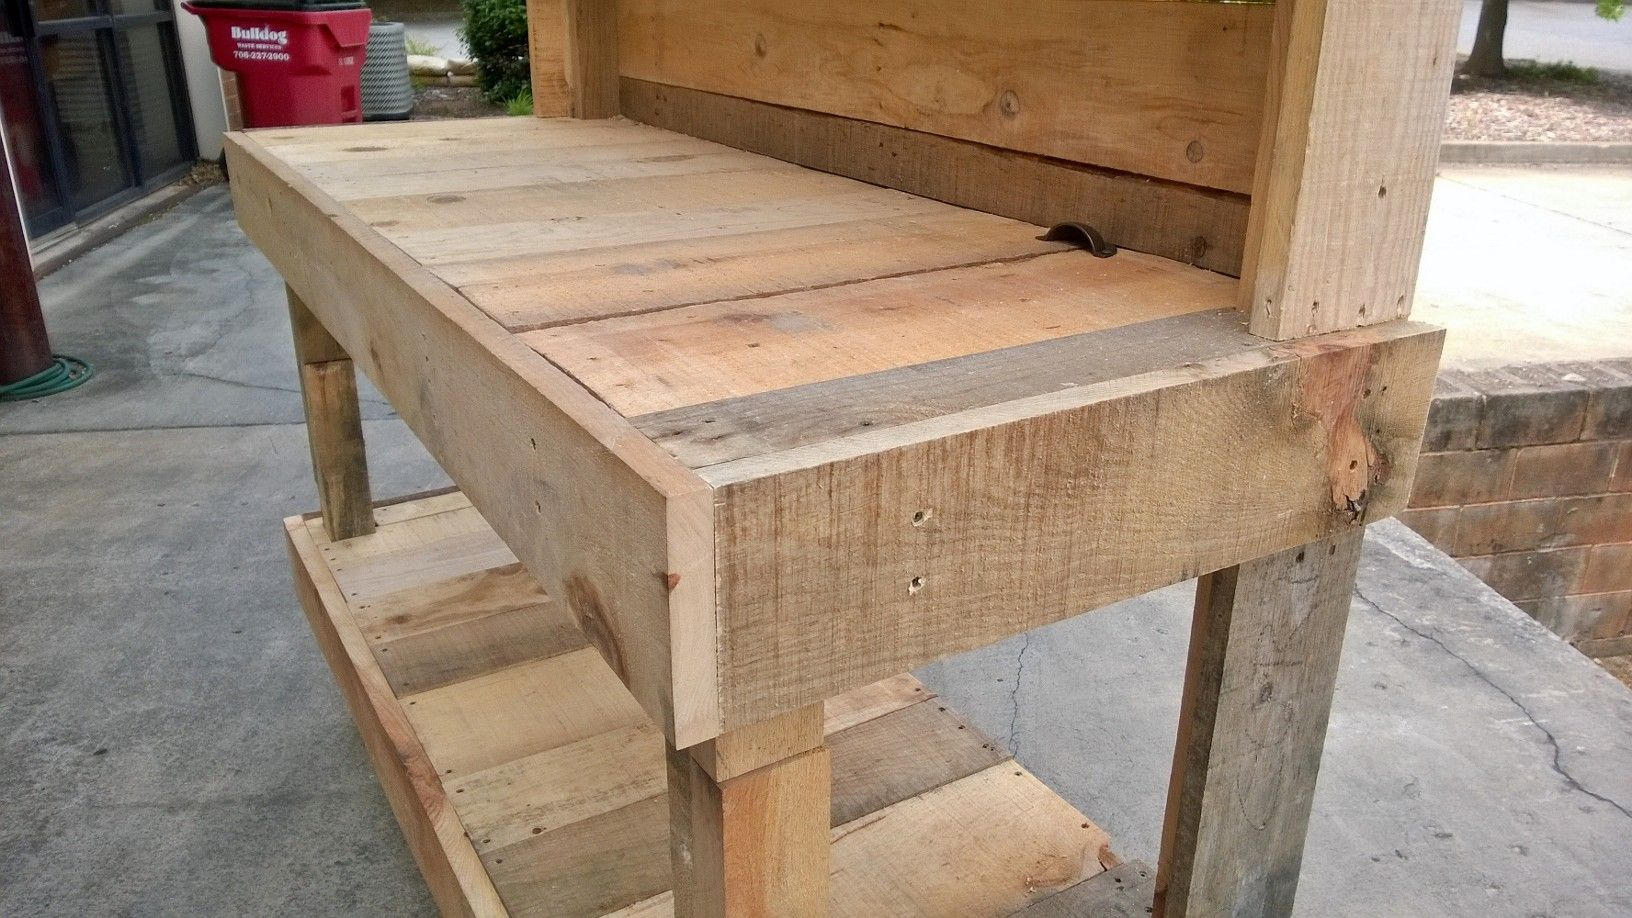 An Upcycled Garden Work Bench That I Made Out Of Pallet